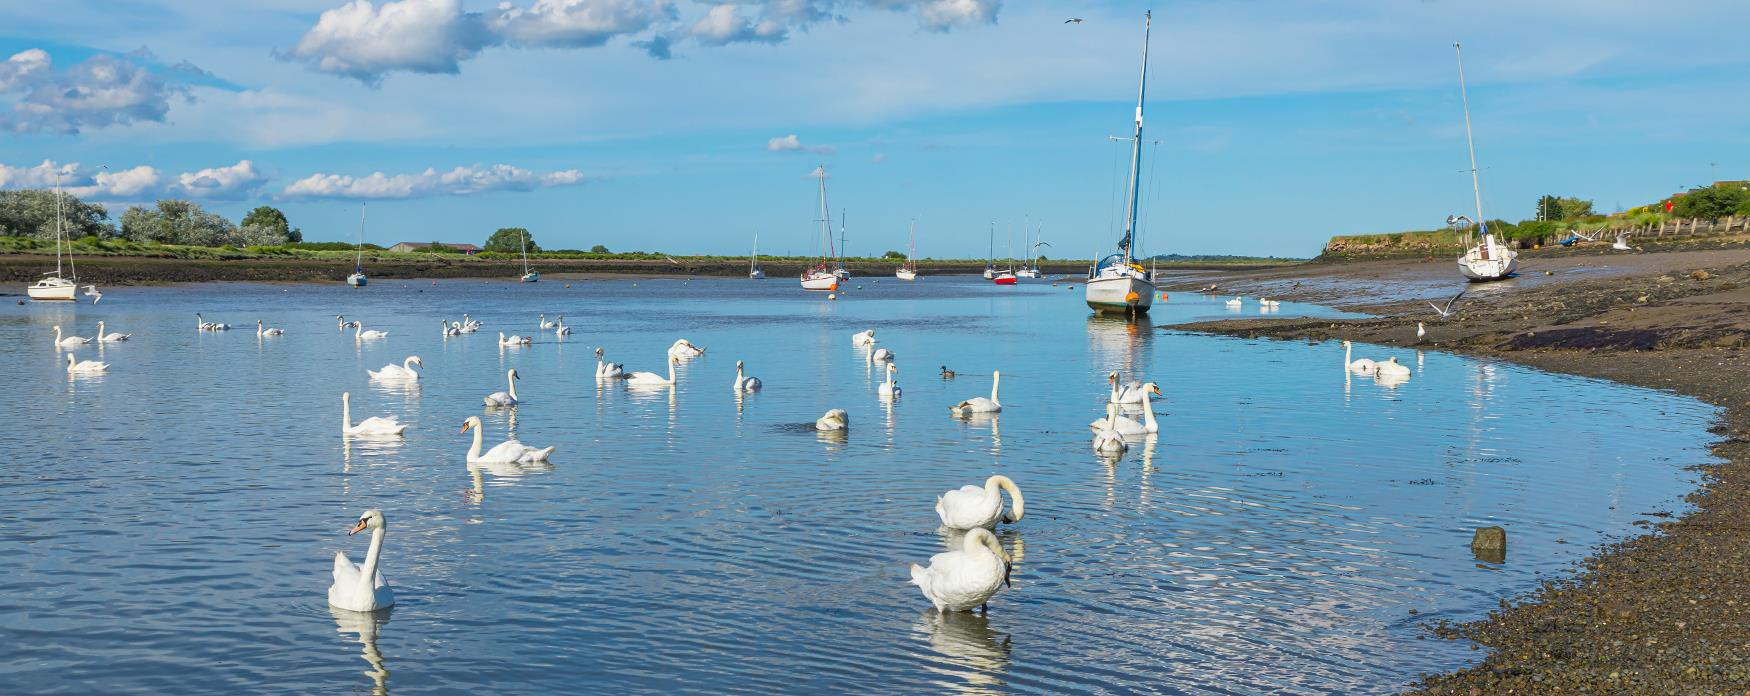 The swans in the water at Hullbridge